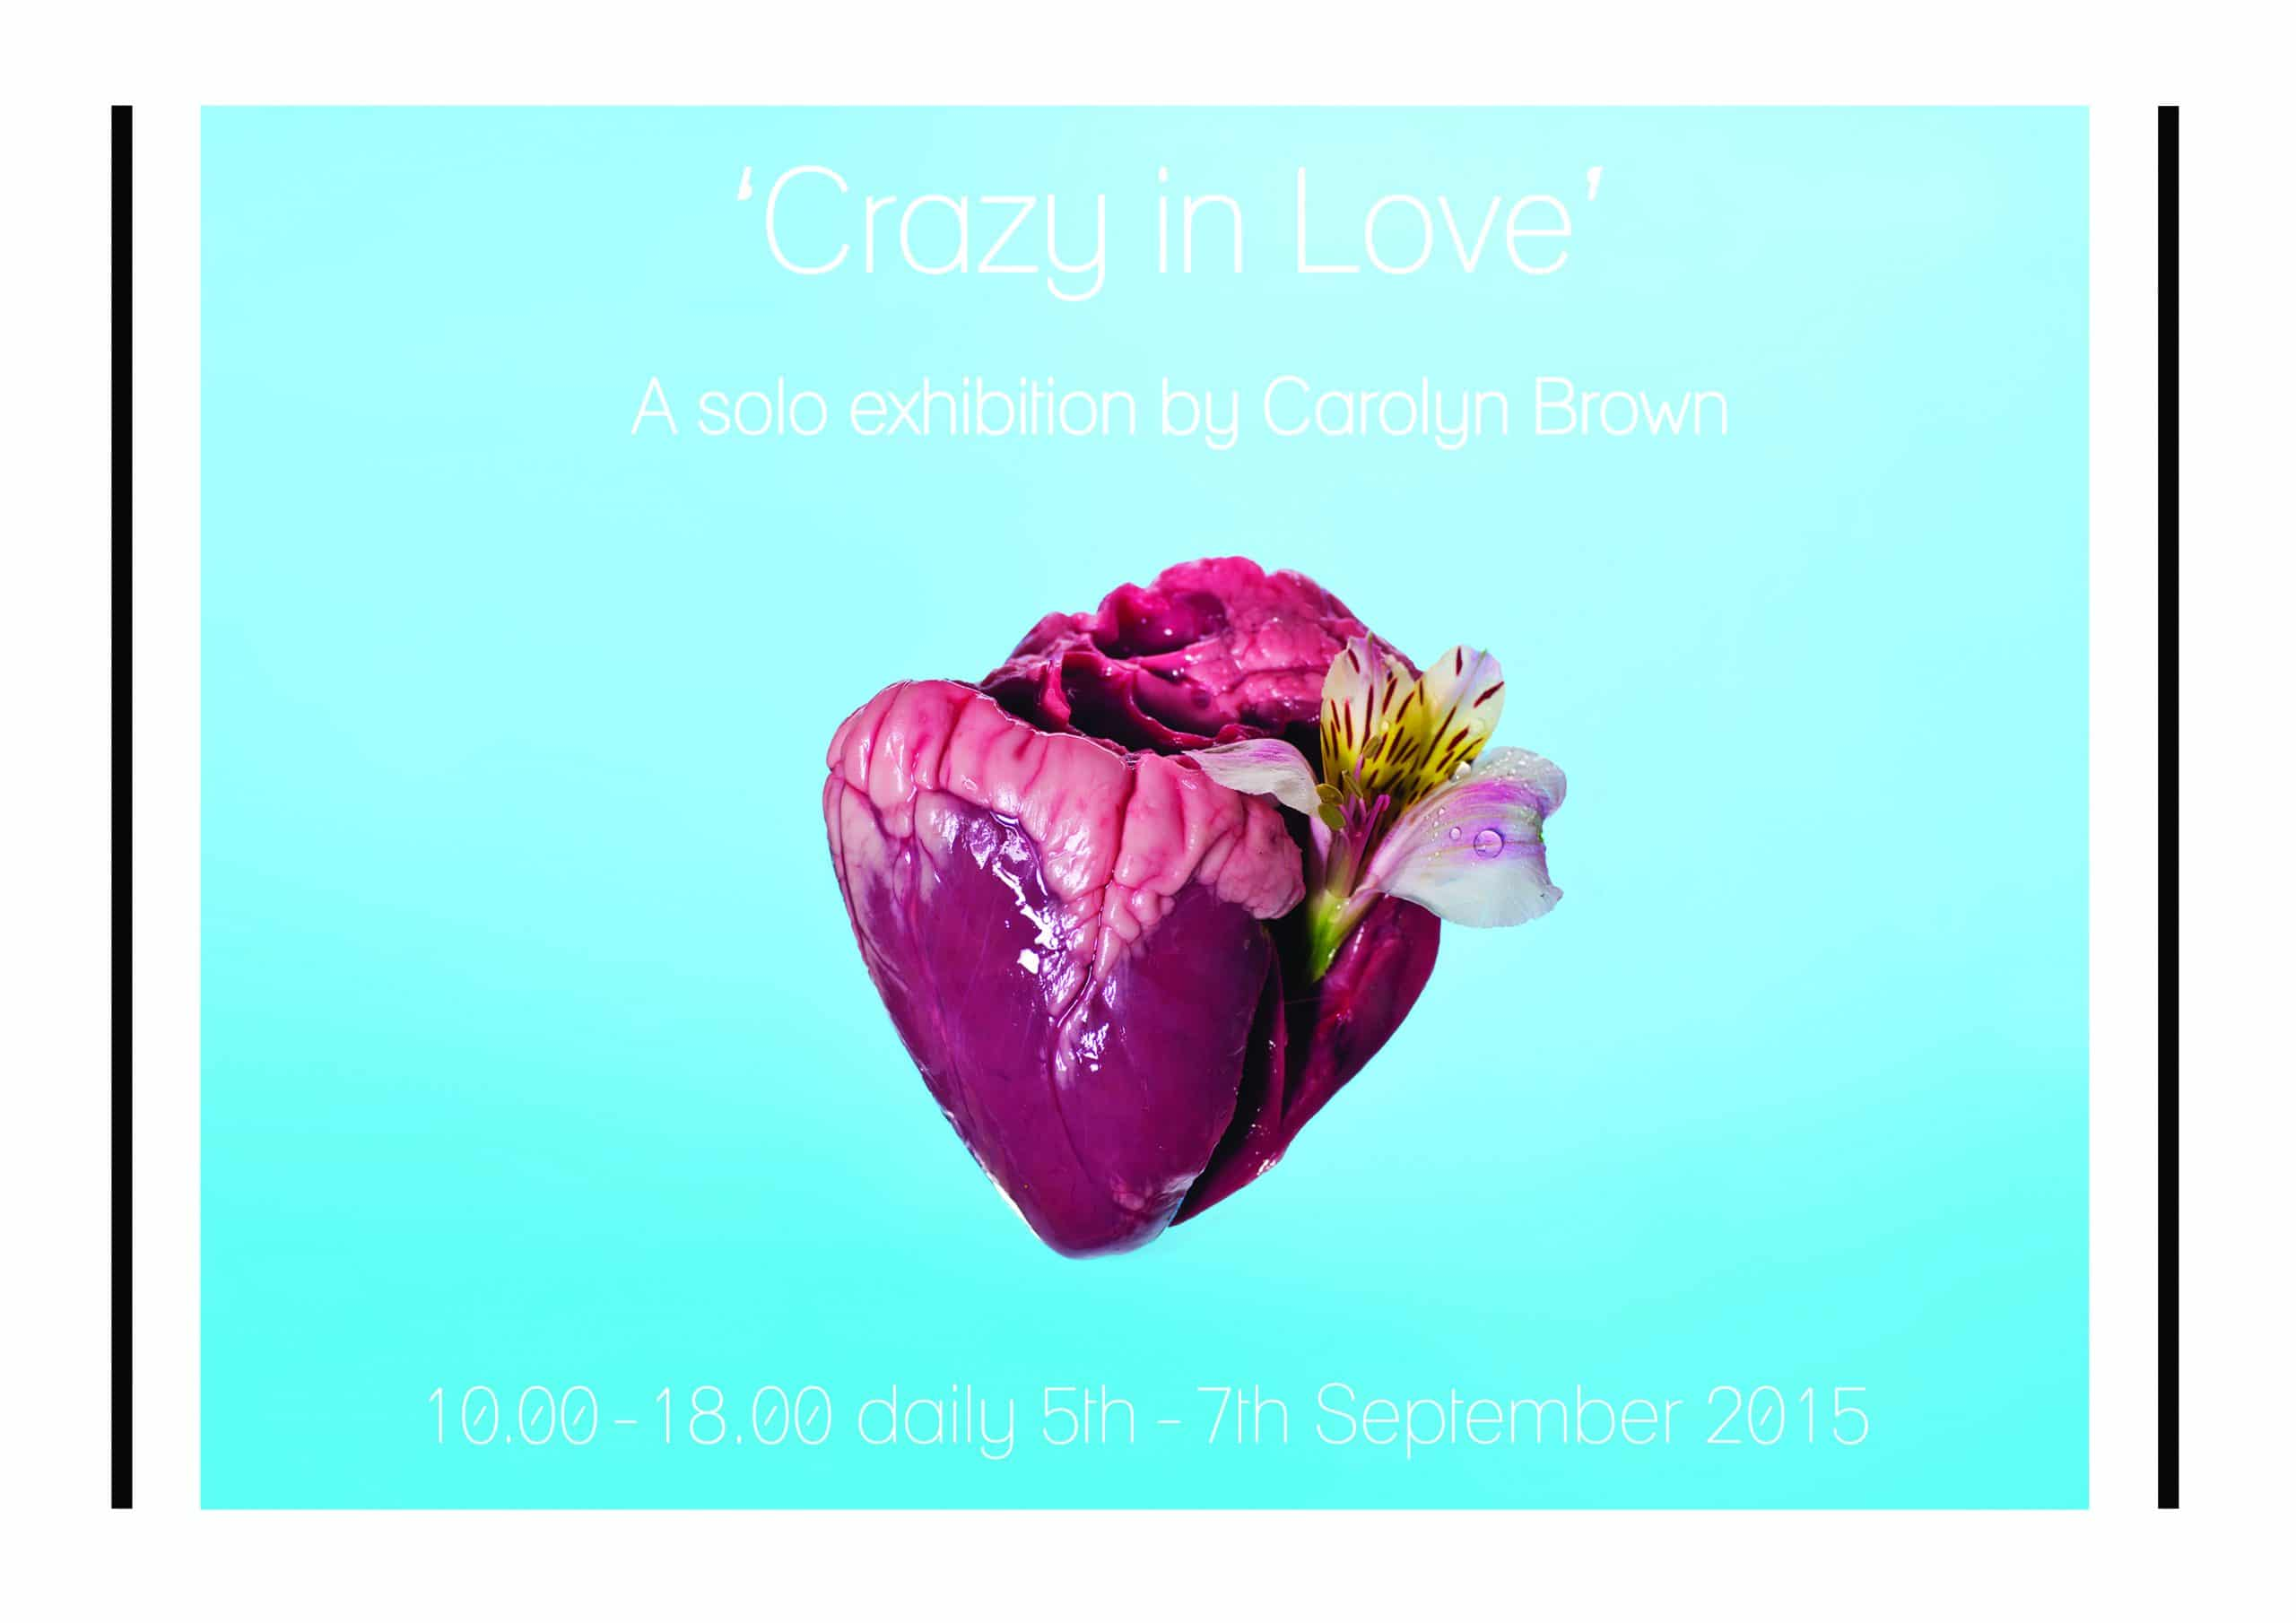 'Crazy in Love' by Carolyn Brown